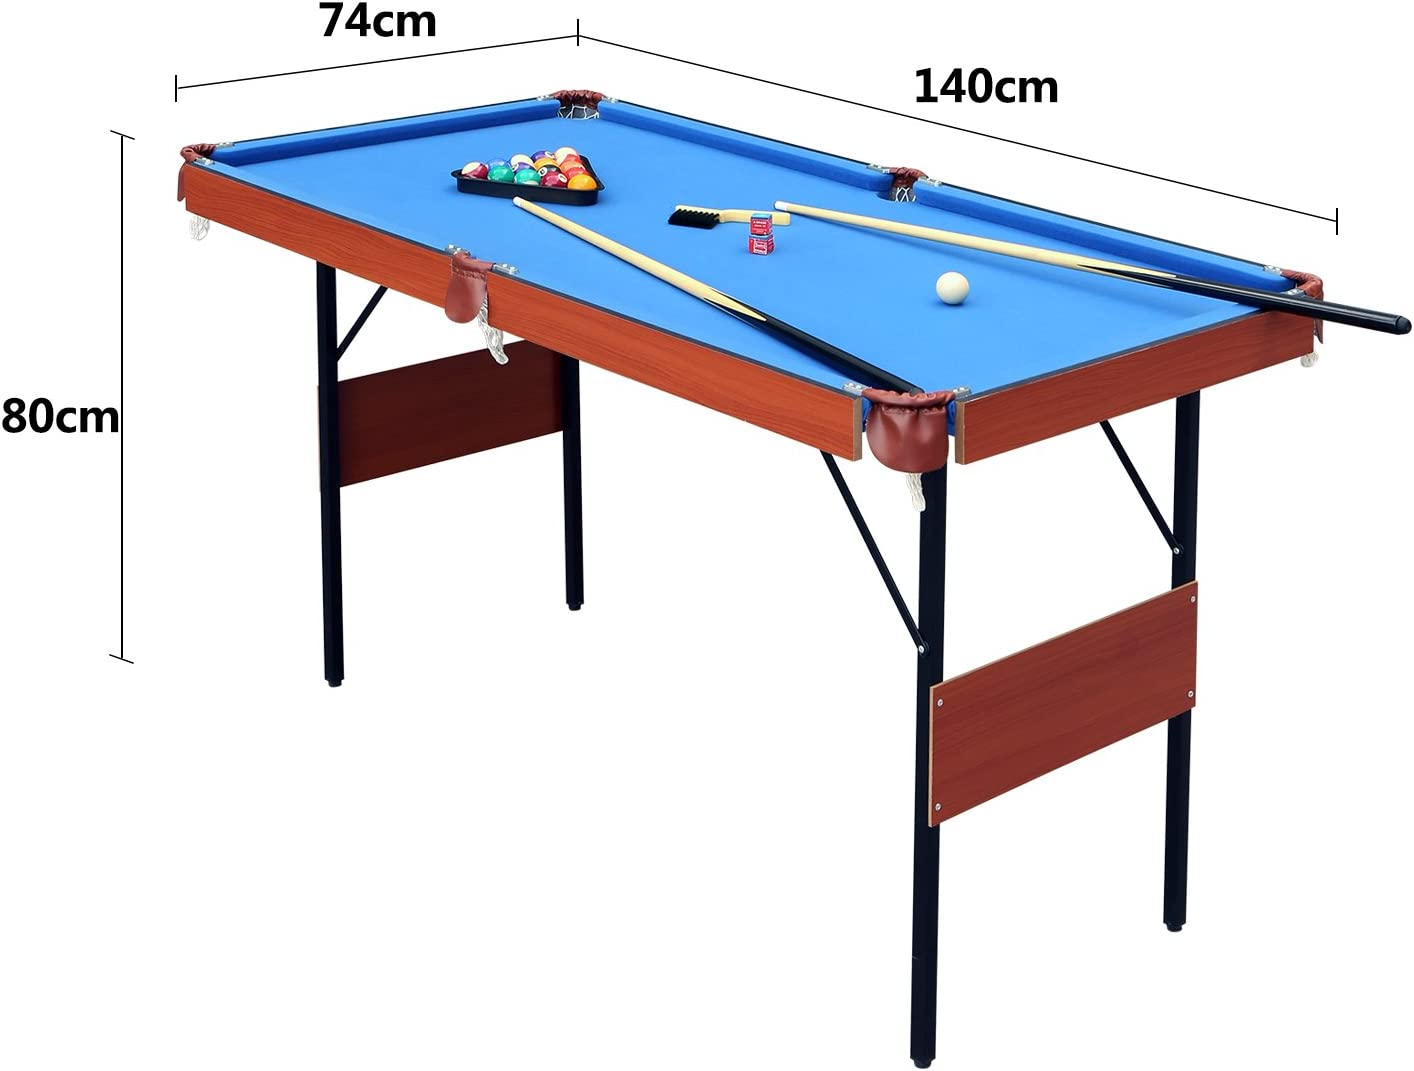 JCF Mini Mesa de Billar Snooker Mesa Plegable, Color Azul, con ...